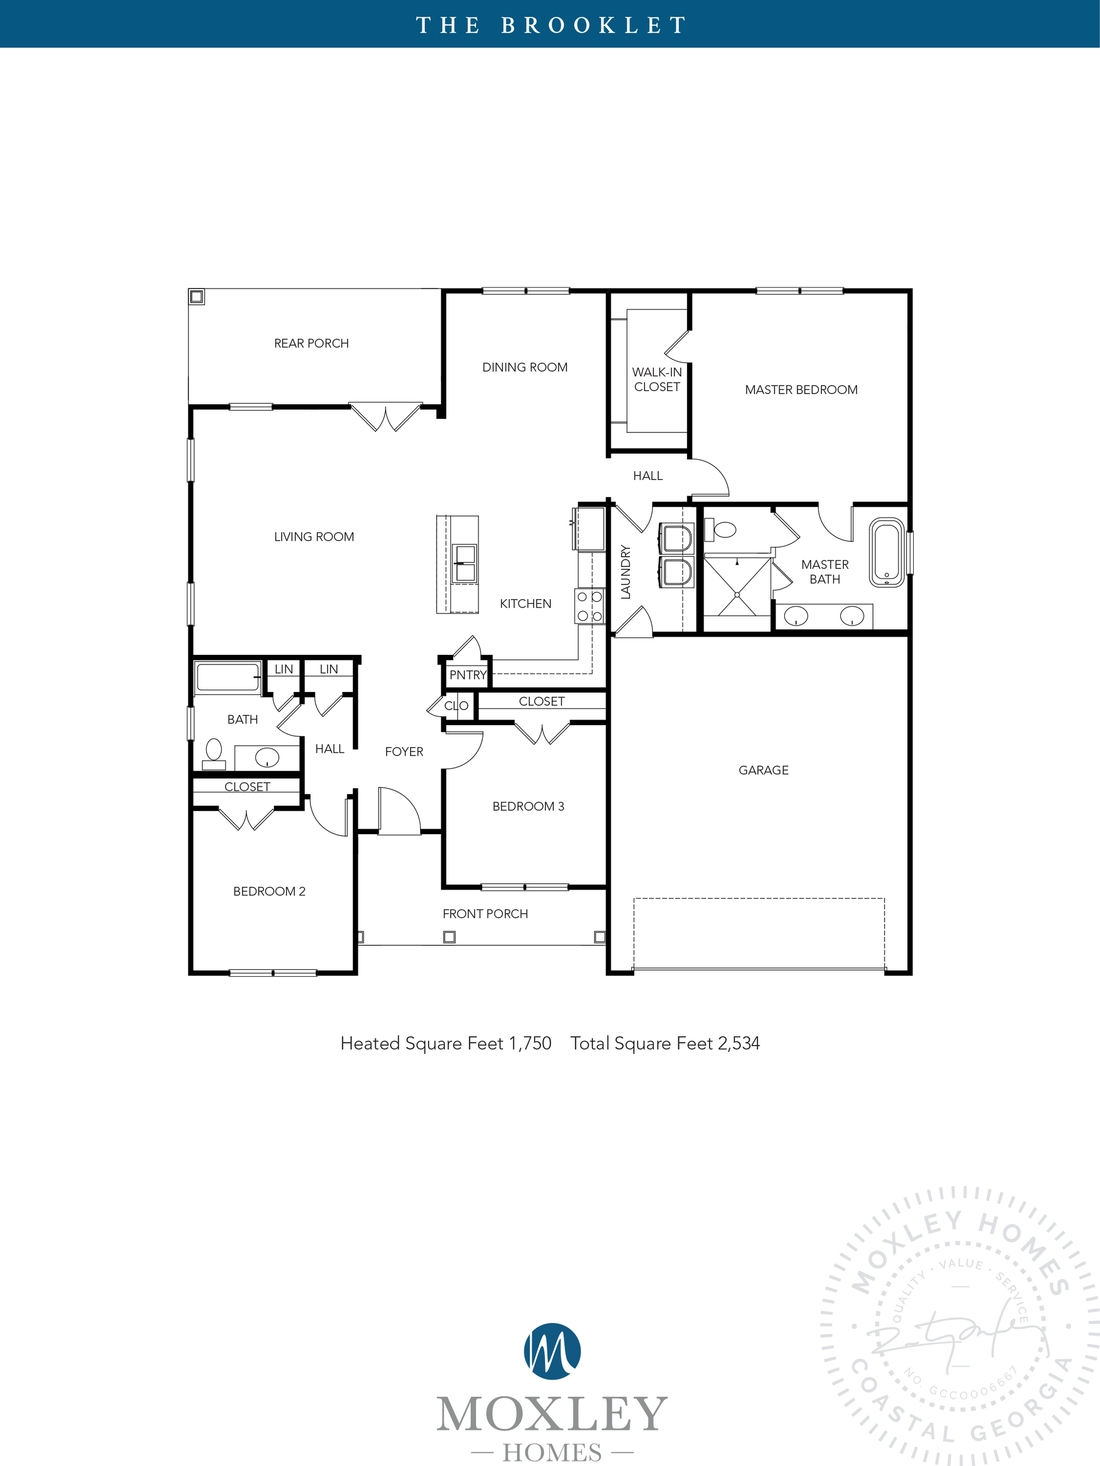 carriage gate plantation, grace crossing, The Brooklet floor plans